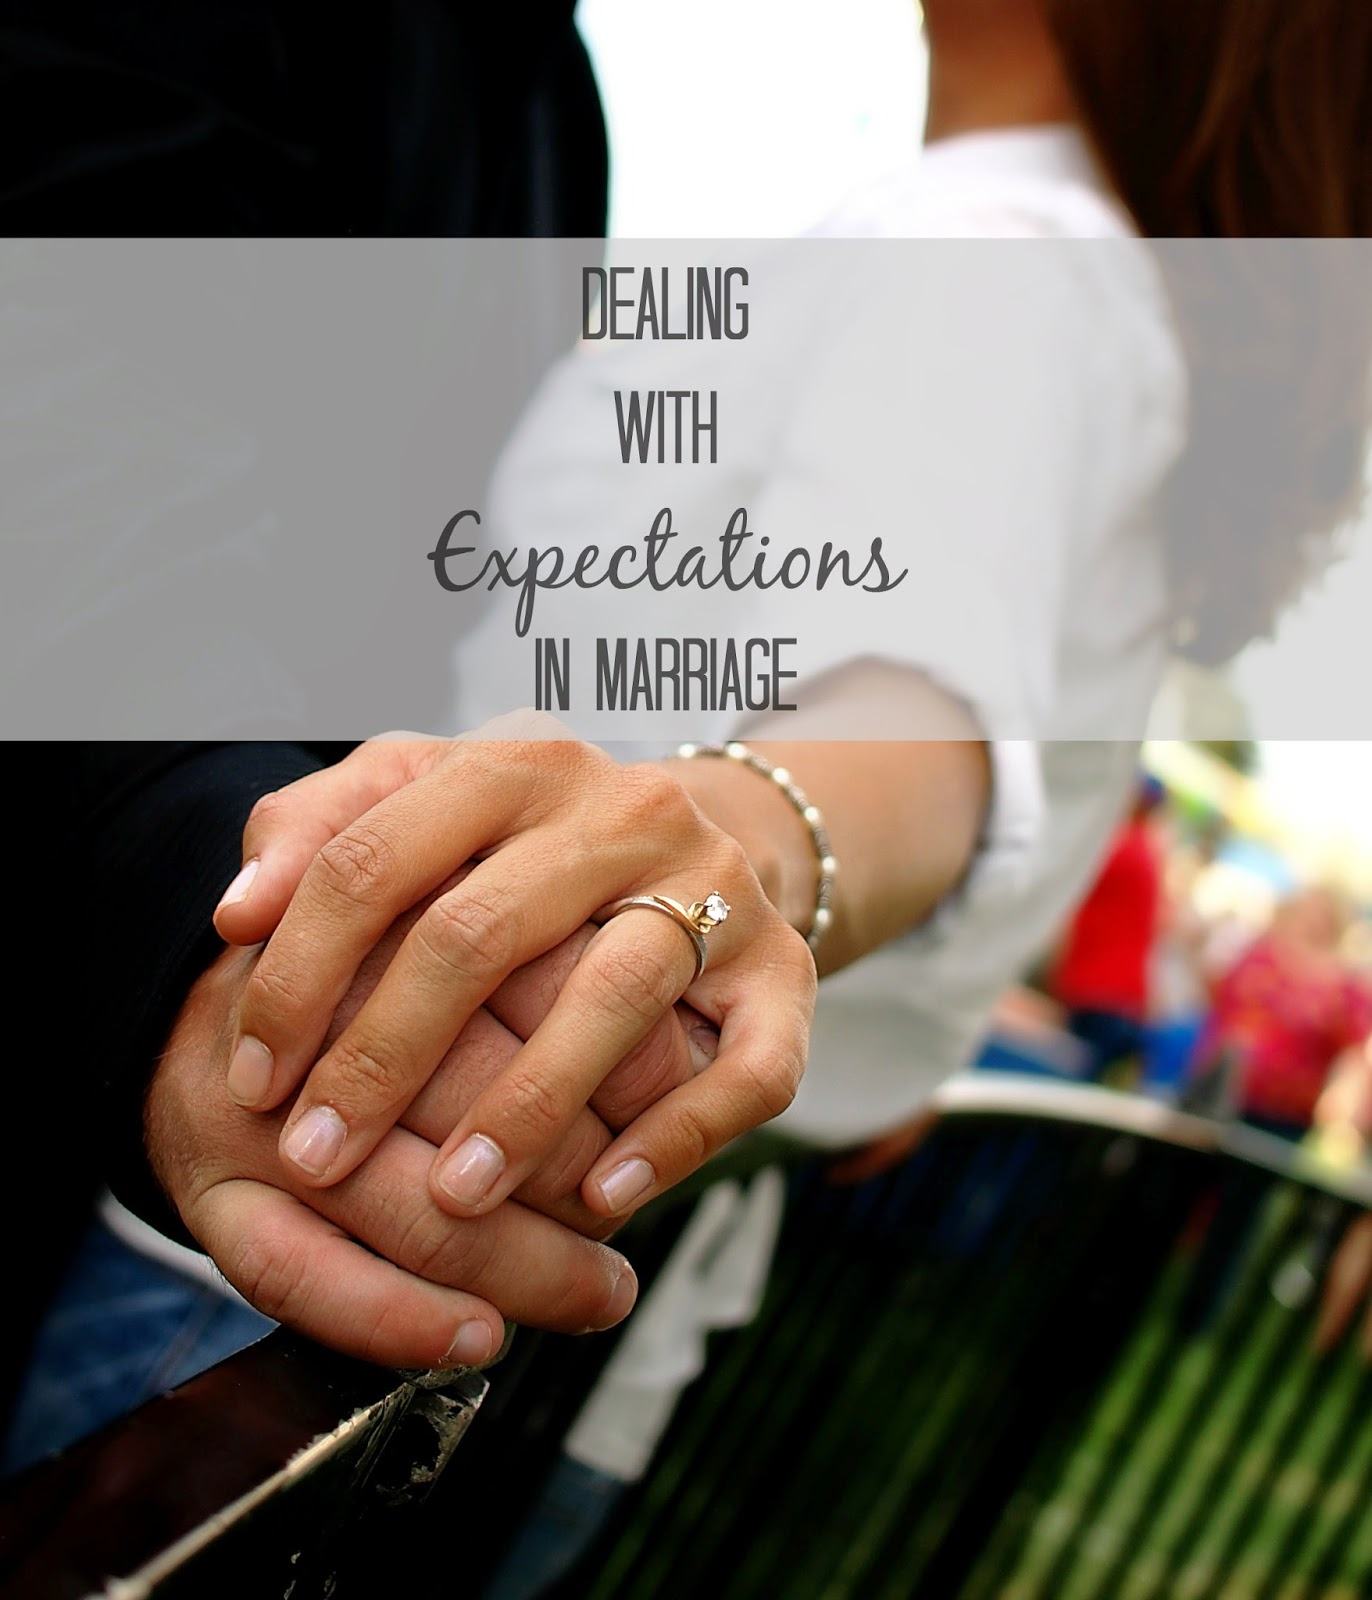 are my marriage expectations too high?